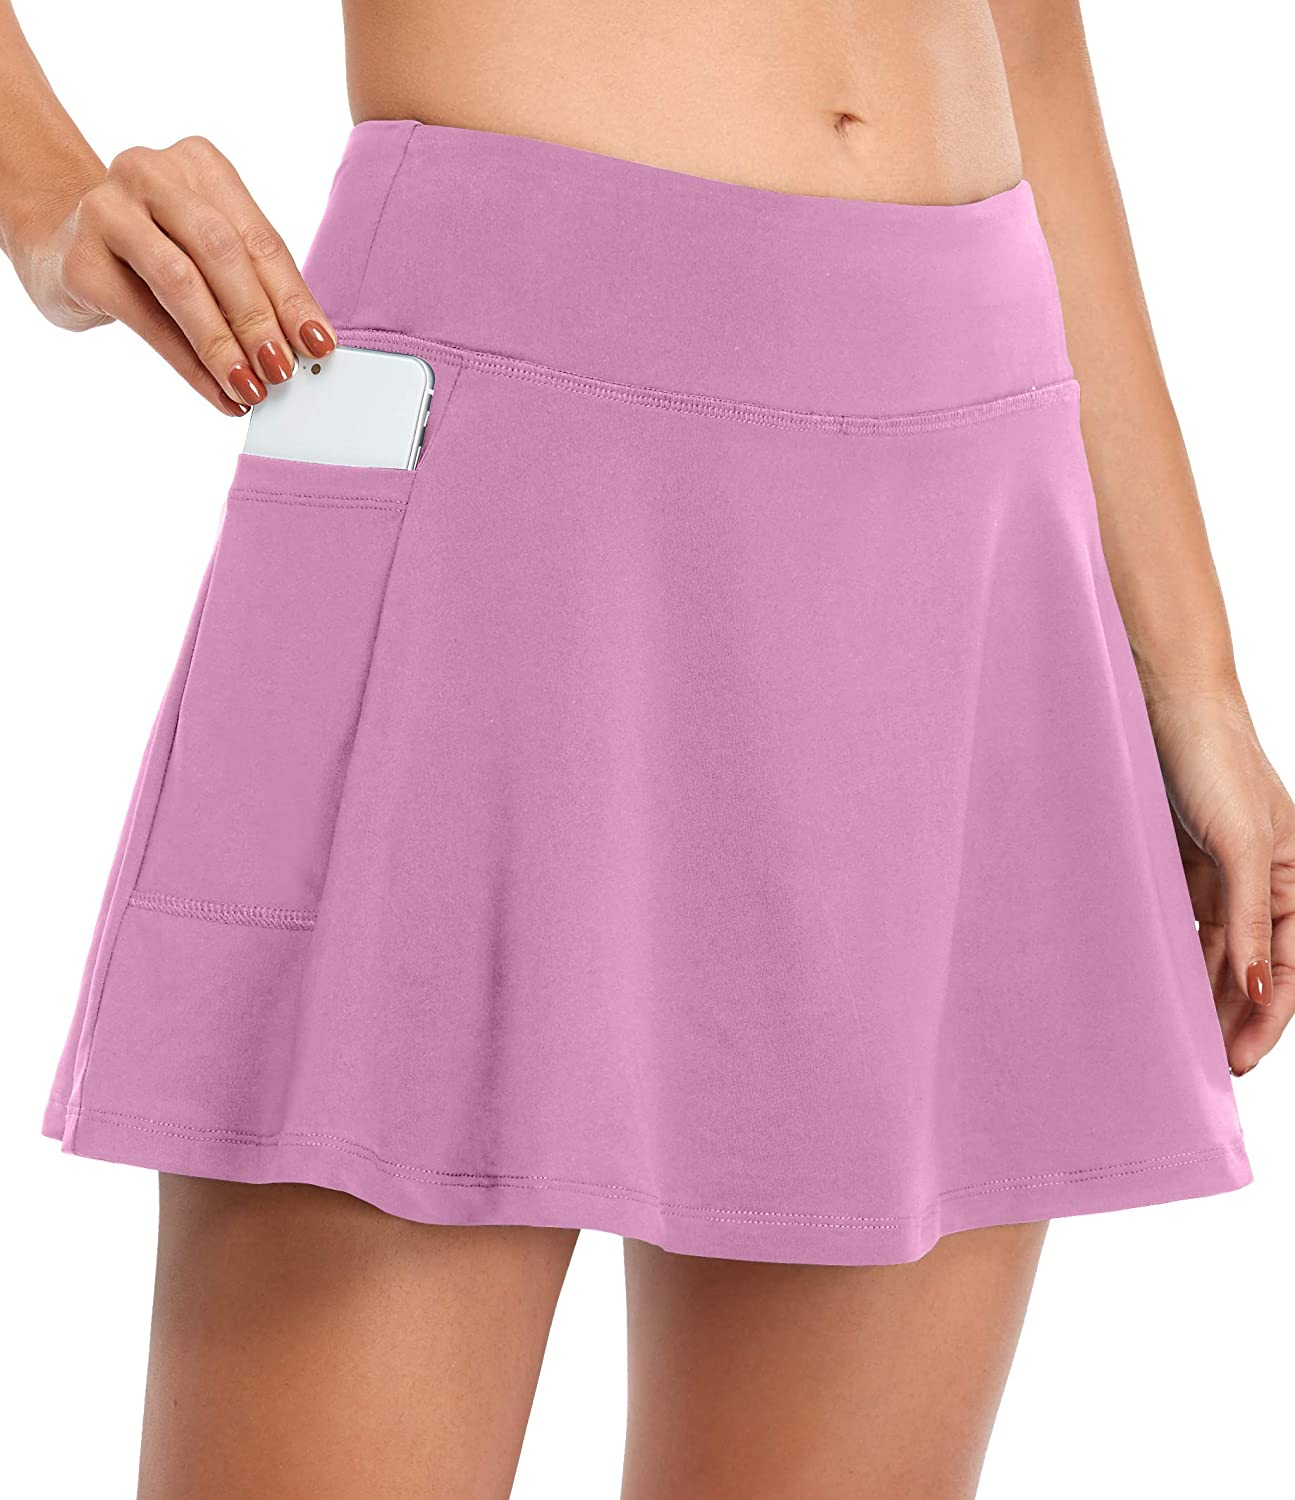 Fulbelle Womens Athletic Tennis Sacramento Mall Skirts with Skorts Elastic Free Shipping Cheap Bargain Gift Golf